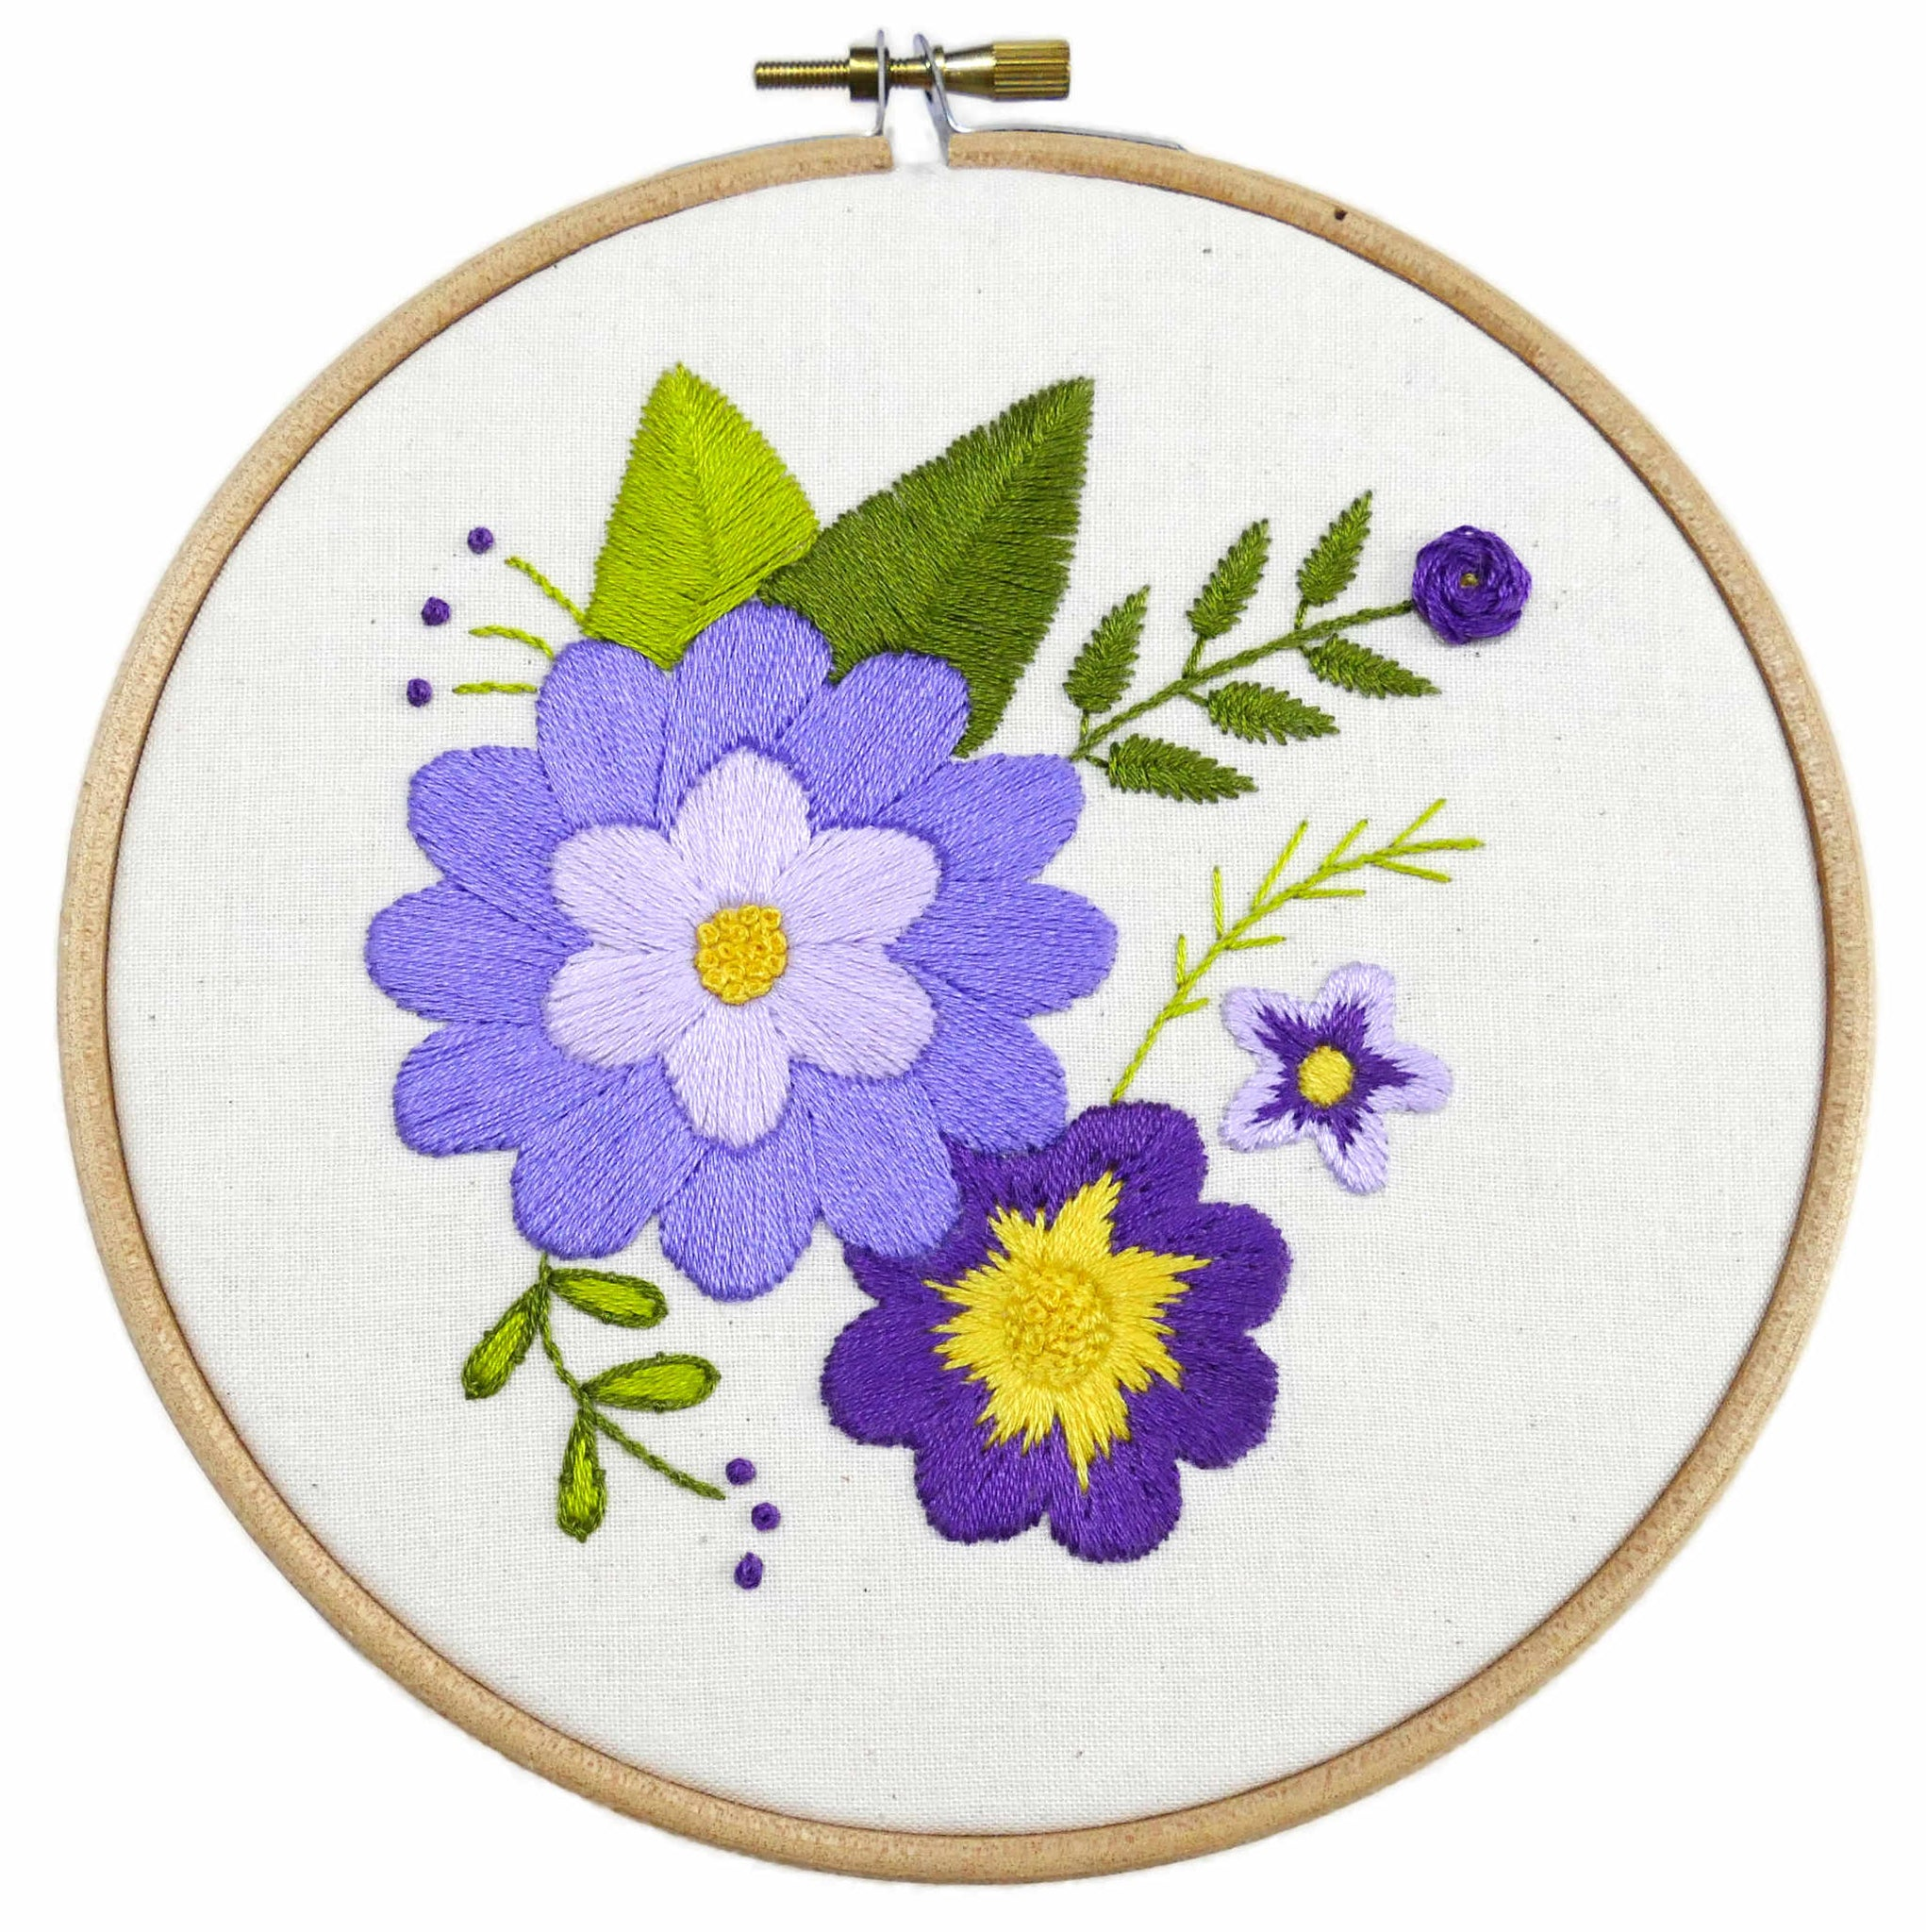 Lilac Flowers Embroidery Kit